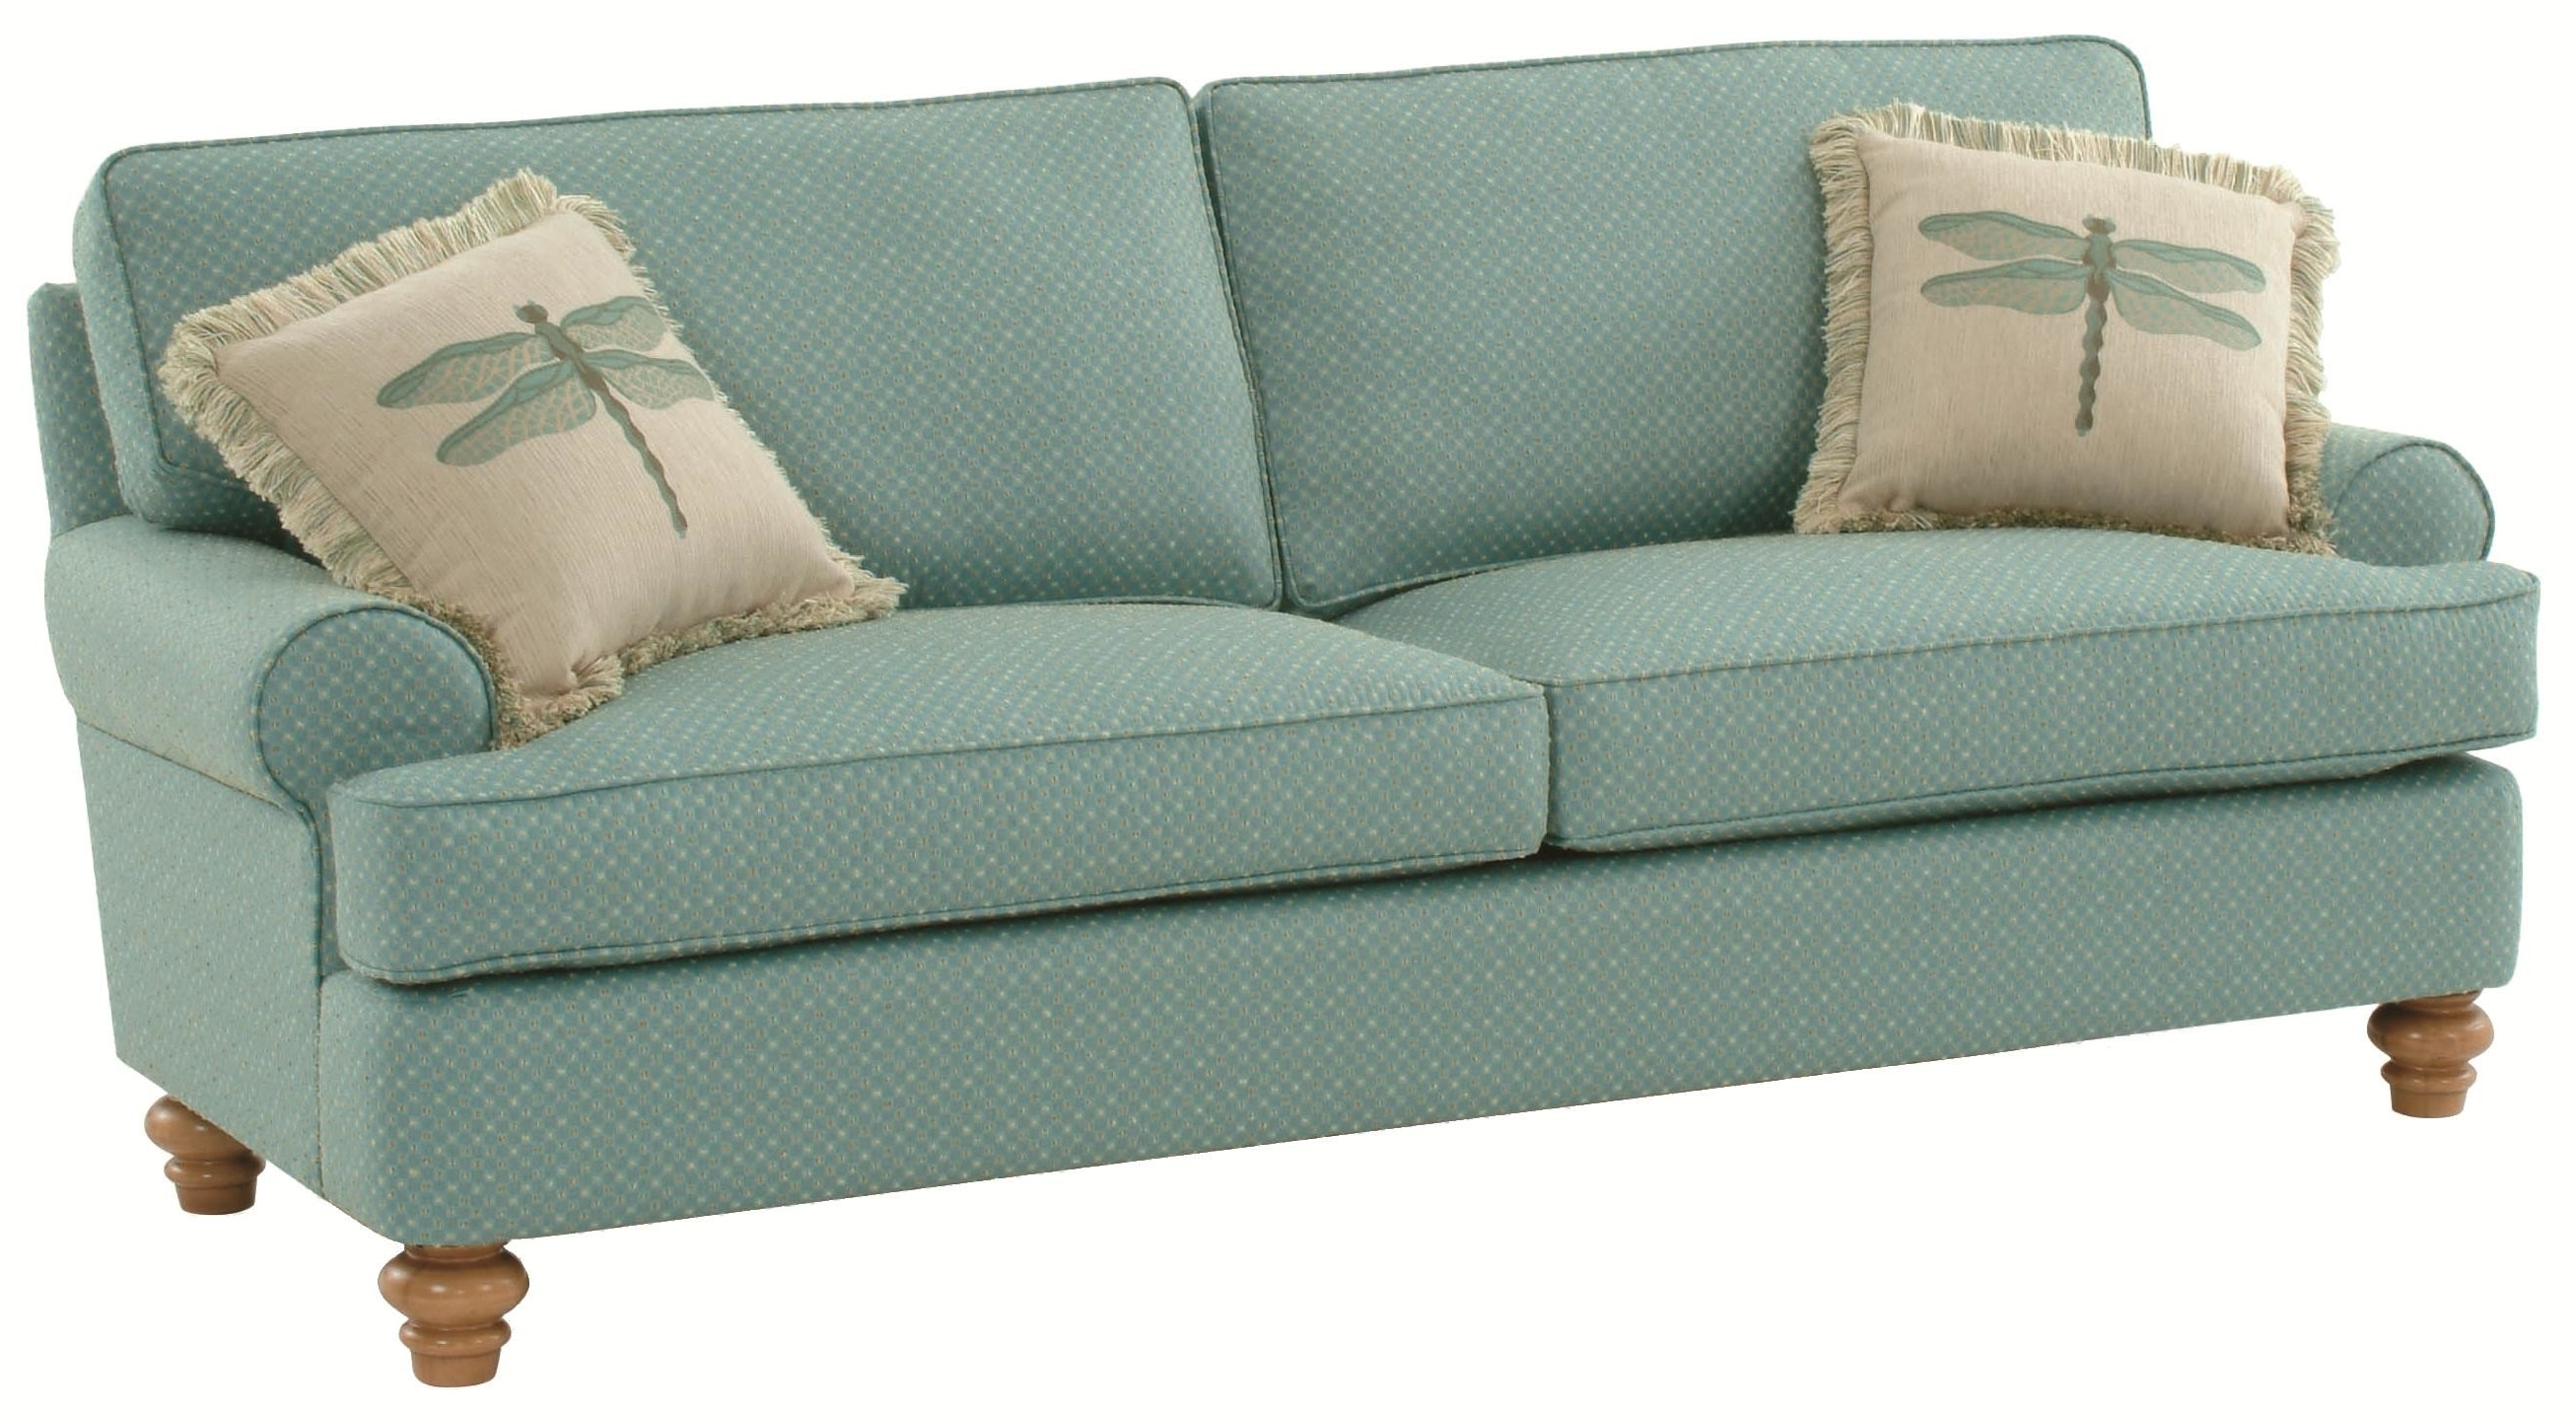 St Cloud Mn Sectional Sofas Regarding Latest Hom Furniture St Cloud Mn (View 16 of 20)